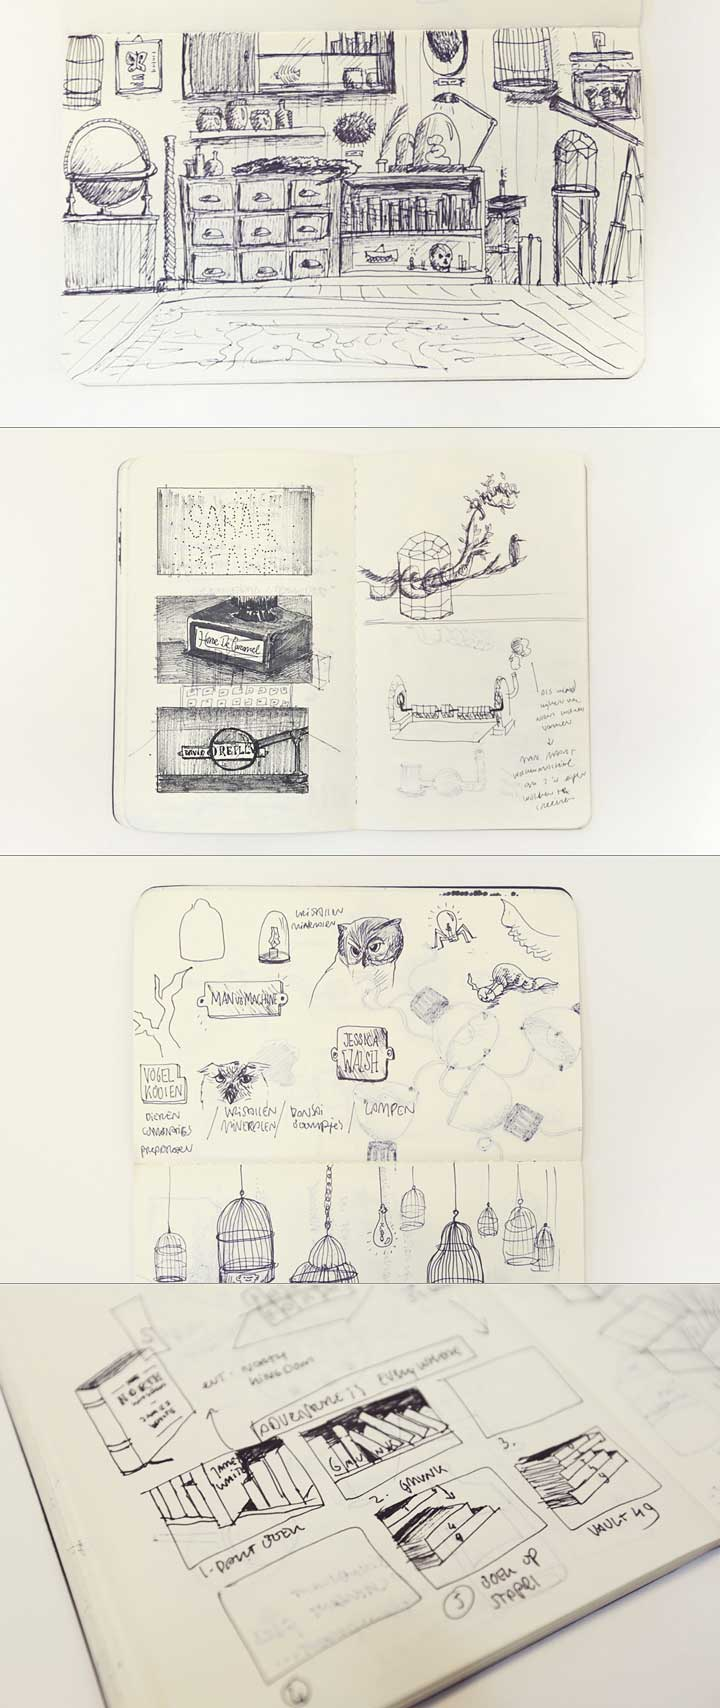 OFFF Barcelona 2013 - Mr. Emilton's Cabinet of Curiosities, sketches